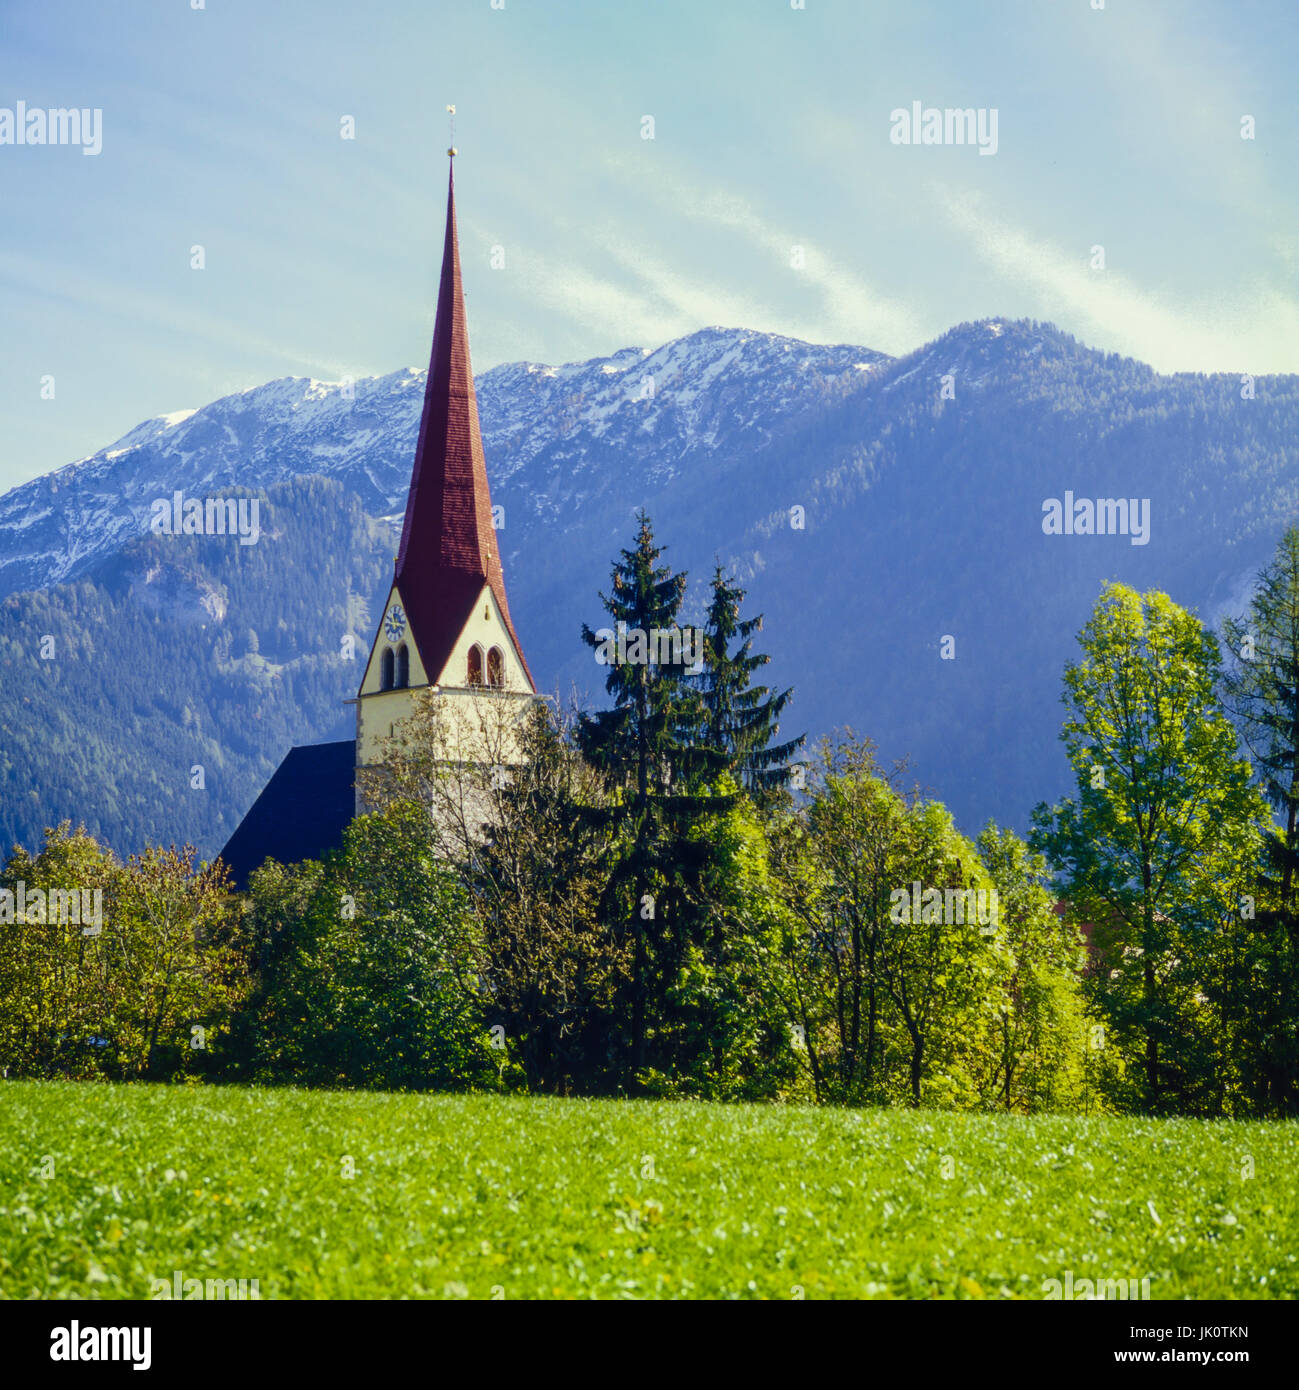 church from achenkirch, Tyrol, before high mountain gebirgspanorama one. church of achenkirch, tyrol in performs - Stock Image